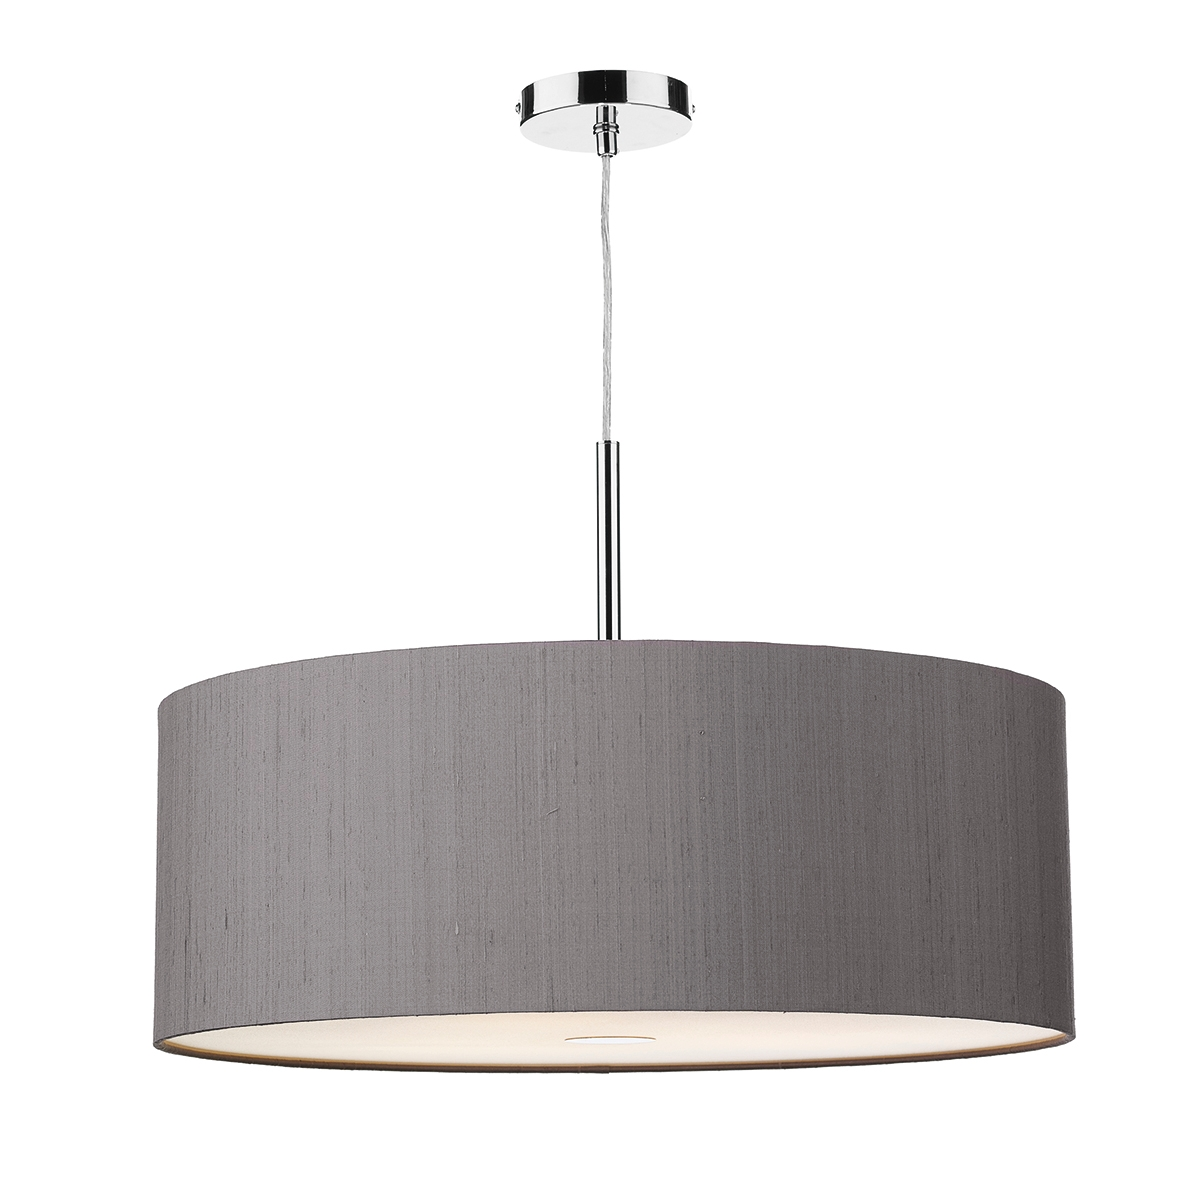 Ellington 60cm 3 Light Pendant